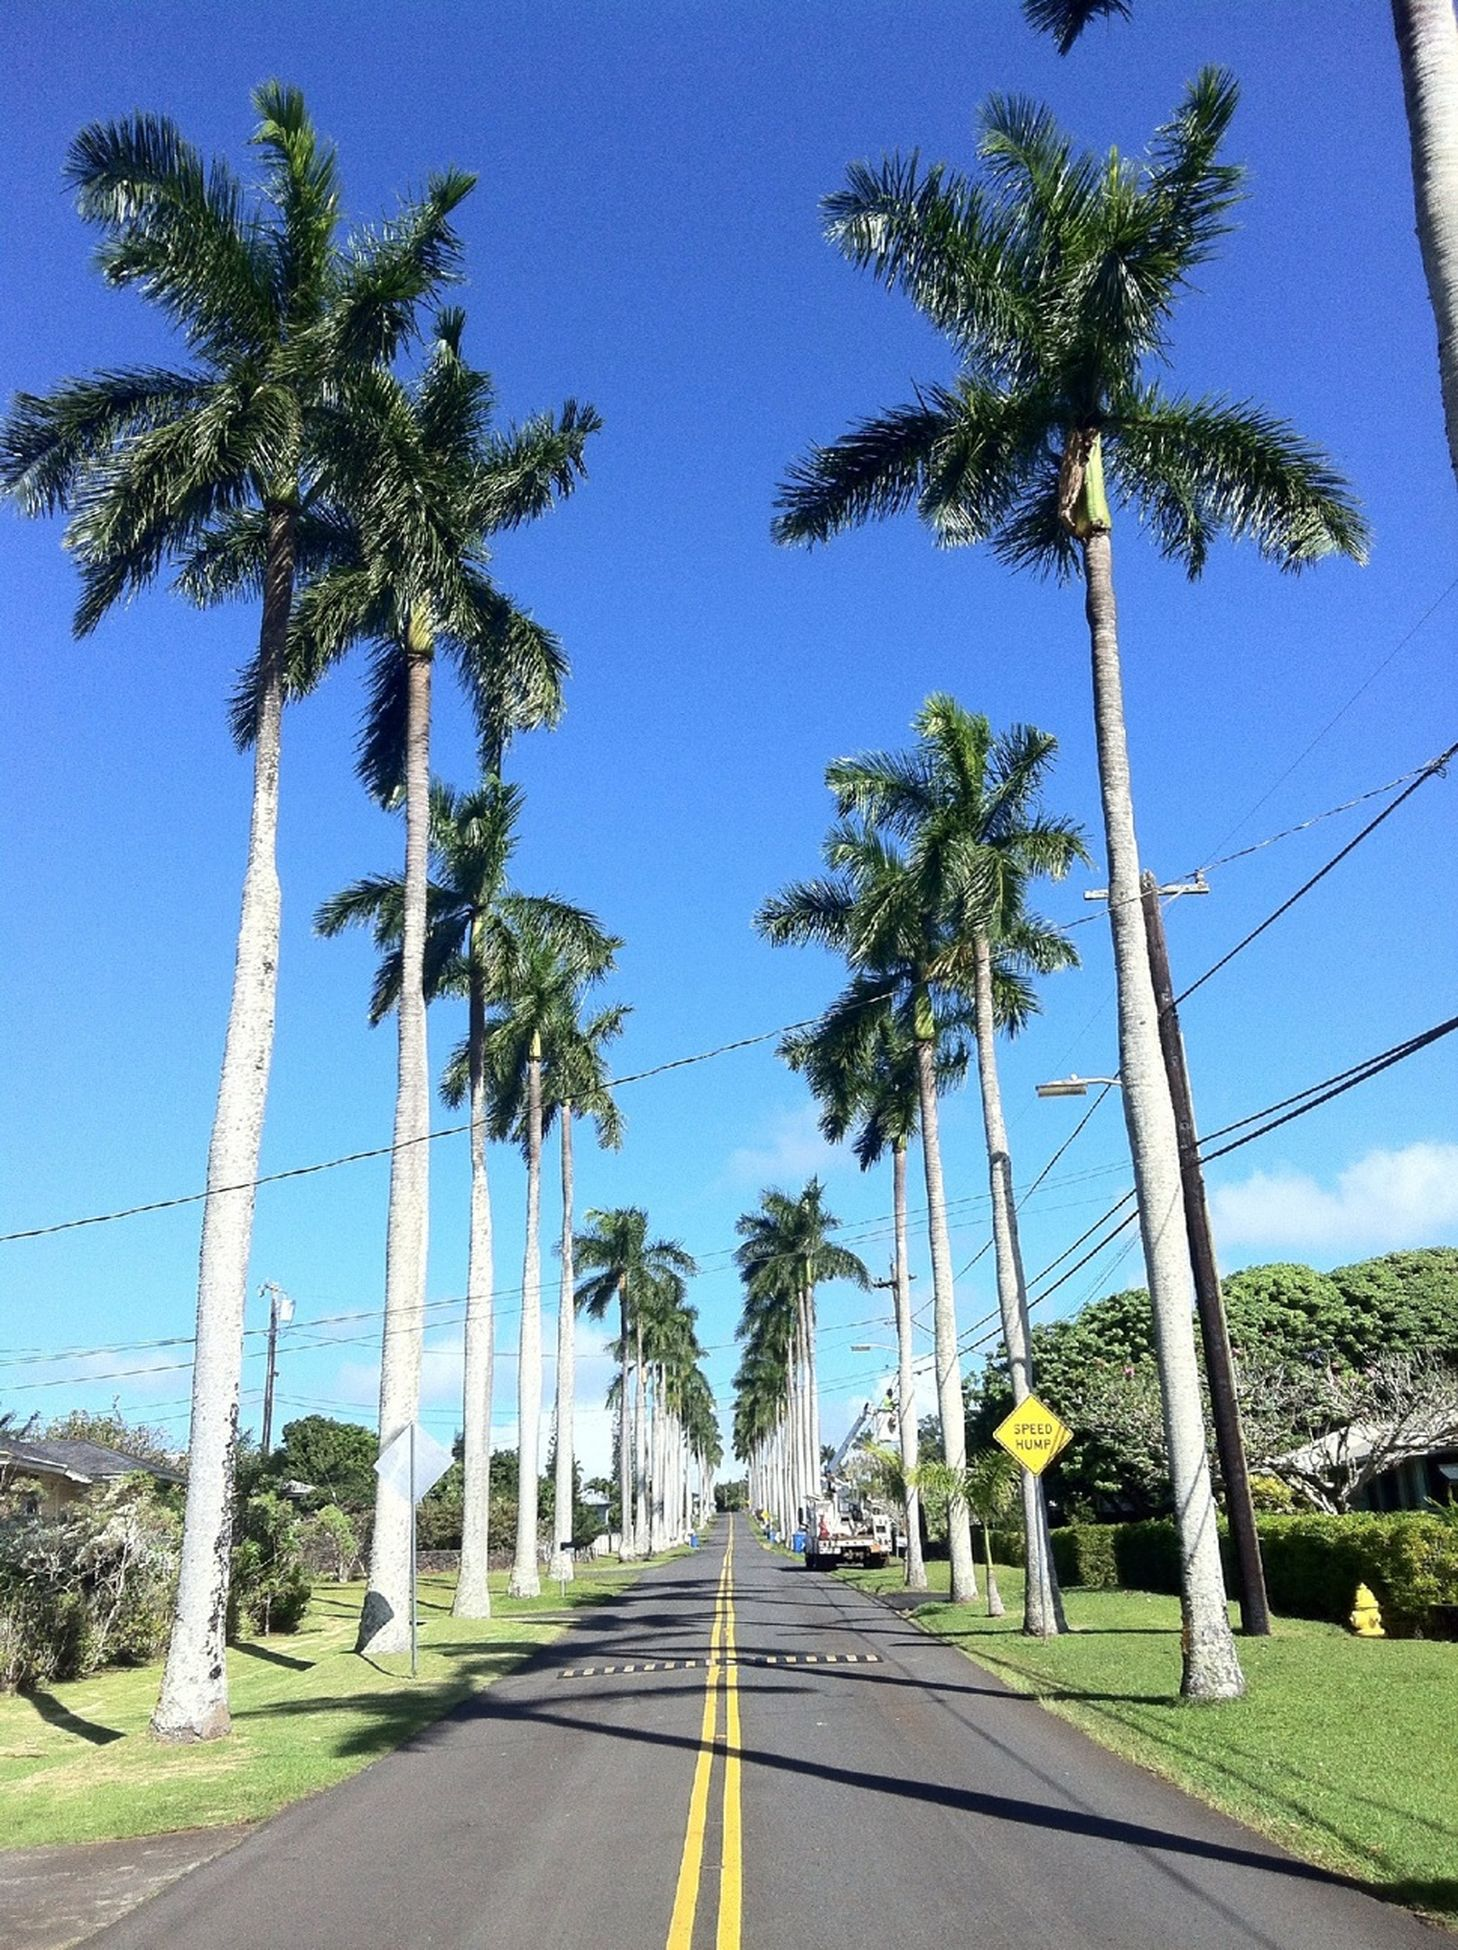 the way forward, tree, palm tree, road, diminishing perspective, transportation, clear sky, blue, vanishing point, treelined, long, empty road, road marking, sky, tree trunk, empty, street, growth, sunlight, day